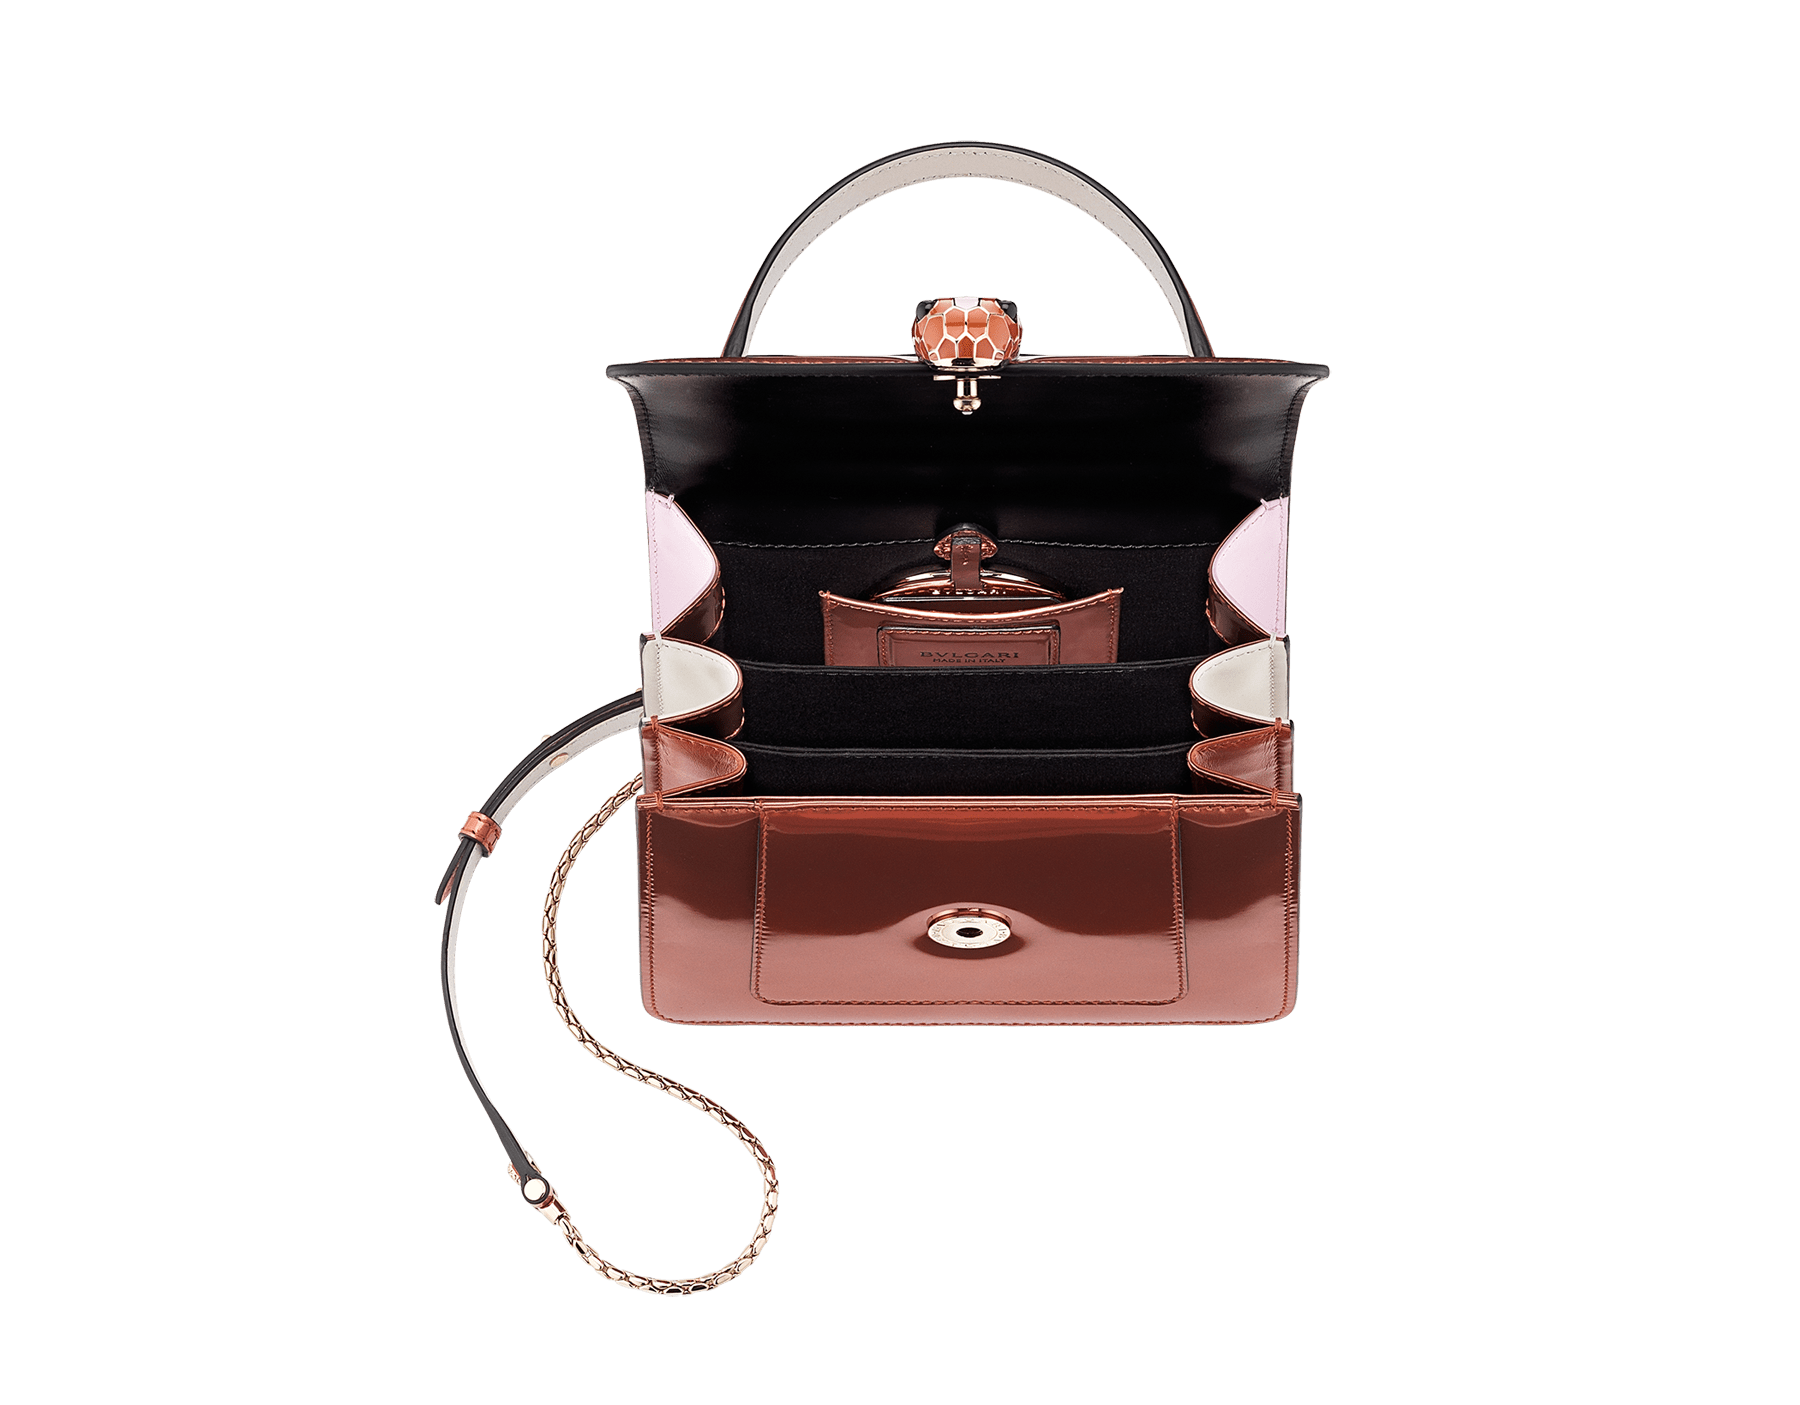 Serpenti Forever crossbody bag in imperial topaz brushed metallic calf leather with Roman garnet, rosa di francia and white agate calf leather sides. Iconic snakehead closure in light gold plated brass embellished with imperial topaz and white enamel and black onyx eyes. 752-NBMCL image 5